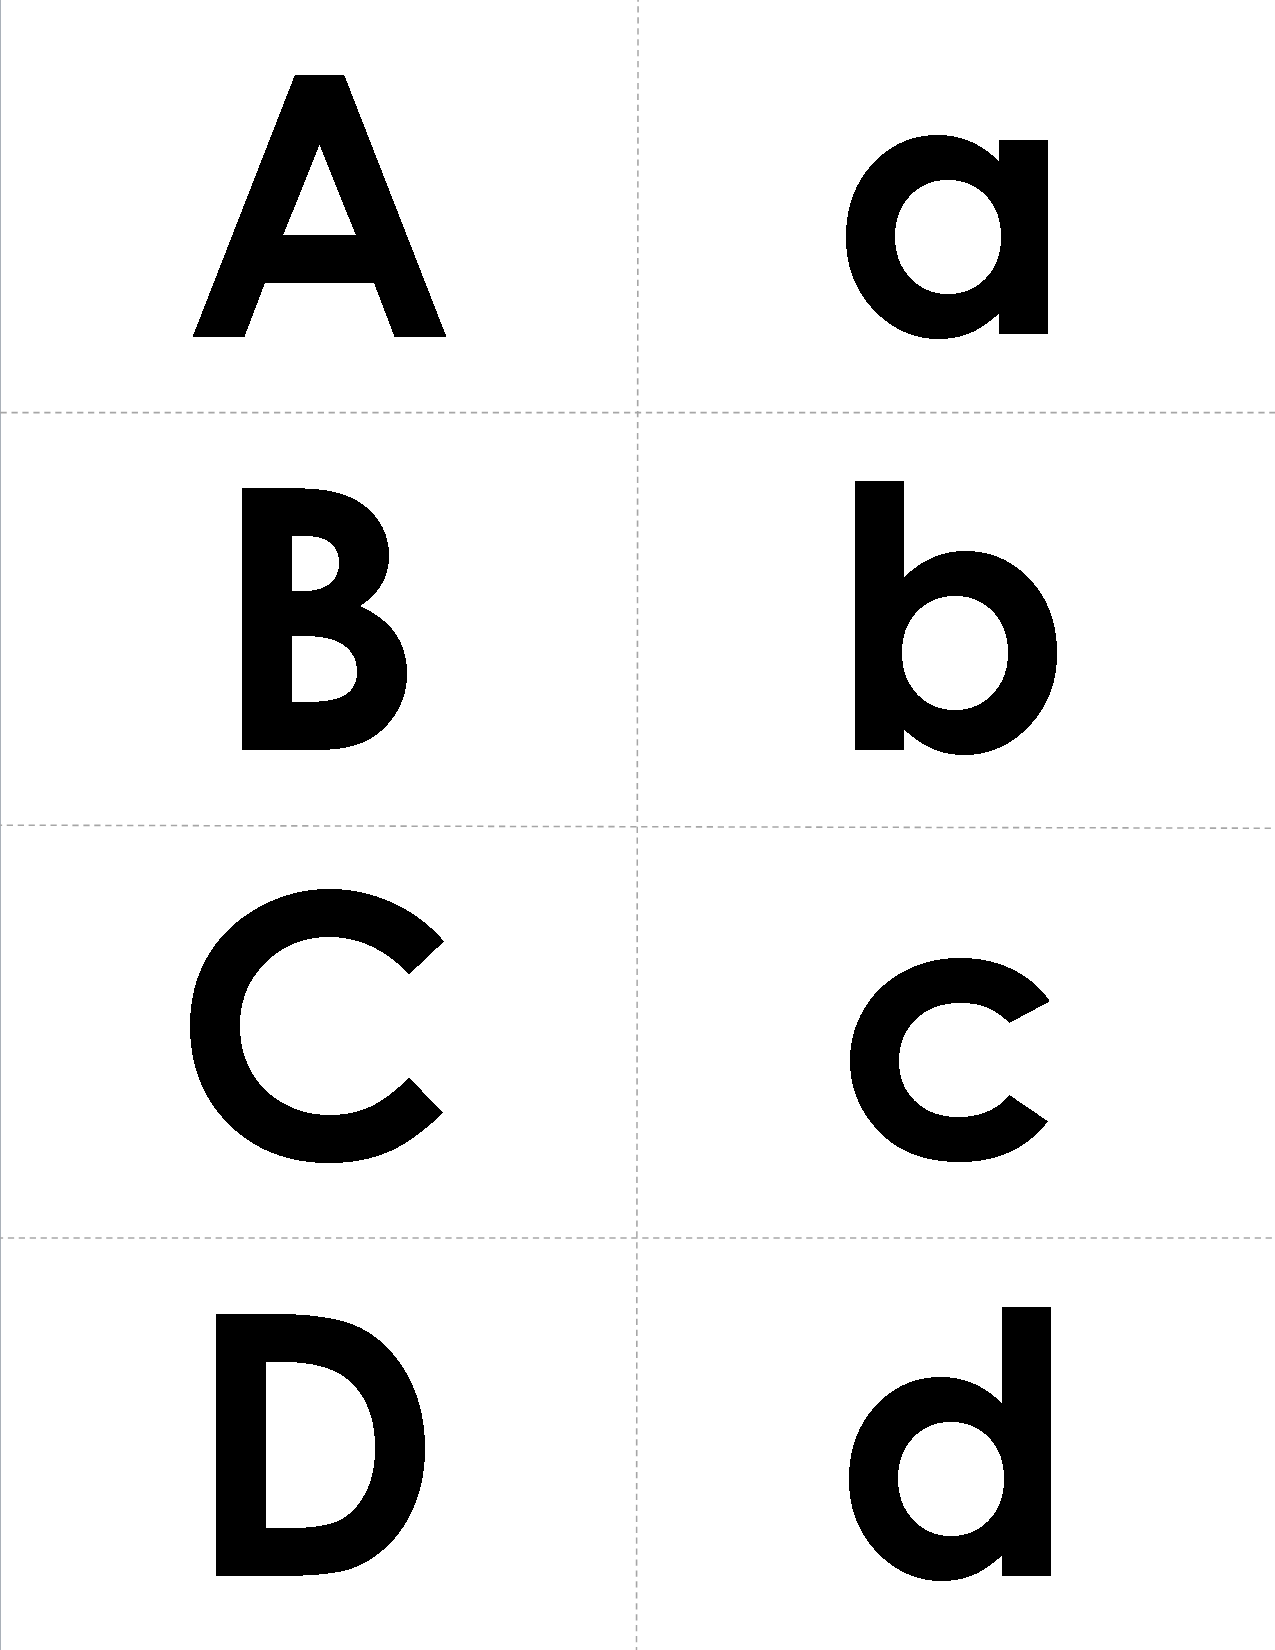 A Set Of Letter Matching Cards In A Simple But Bold Font